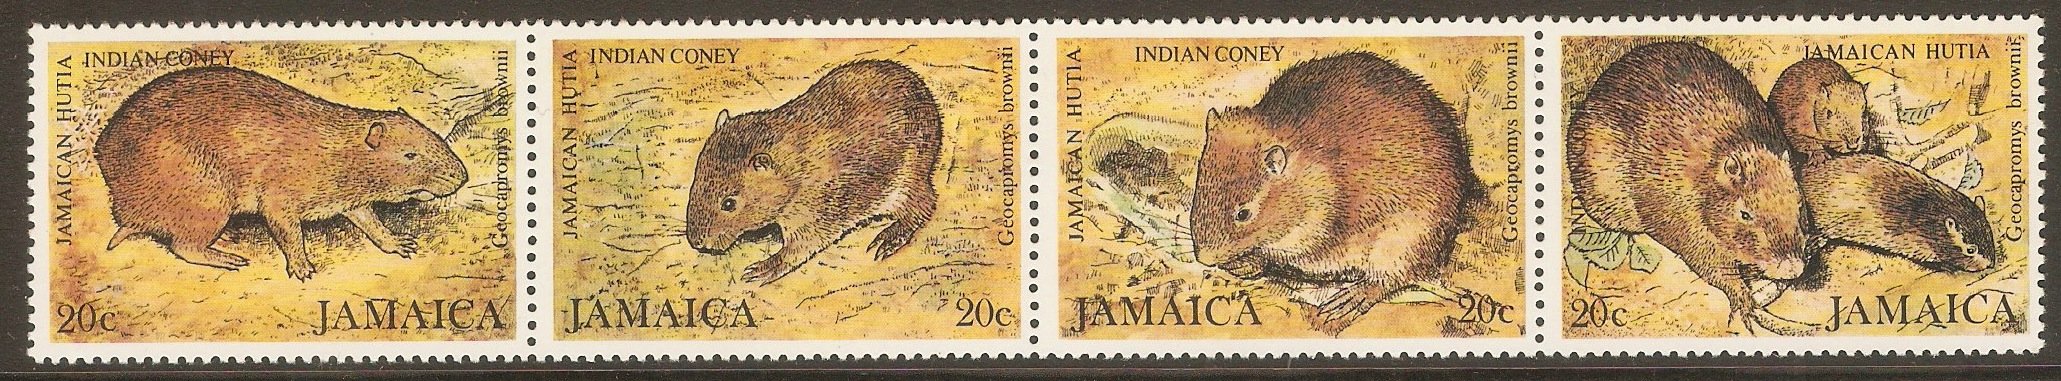 Jamaica 1981 Brown's Hutia set. SG512-SG515.